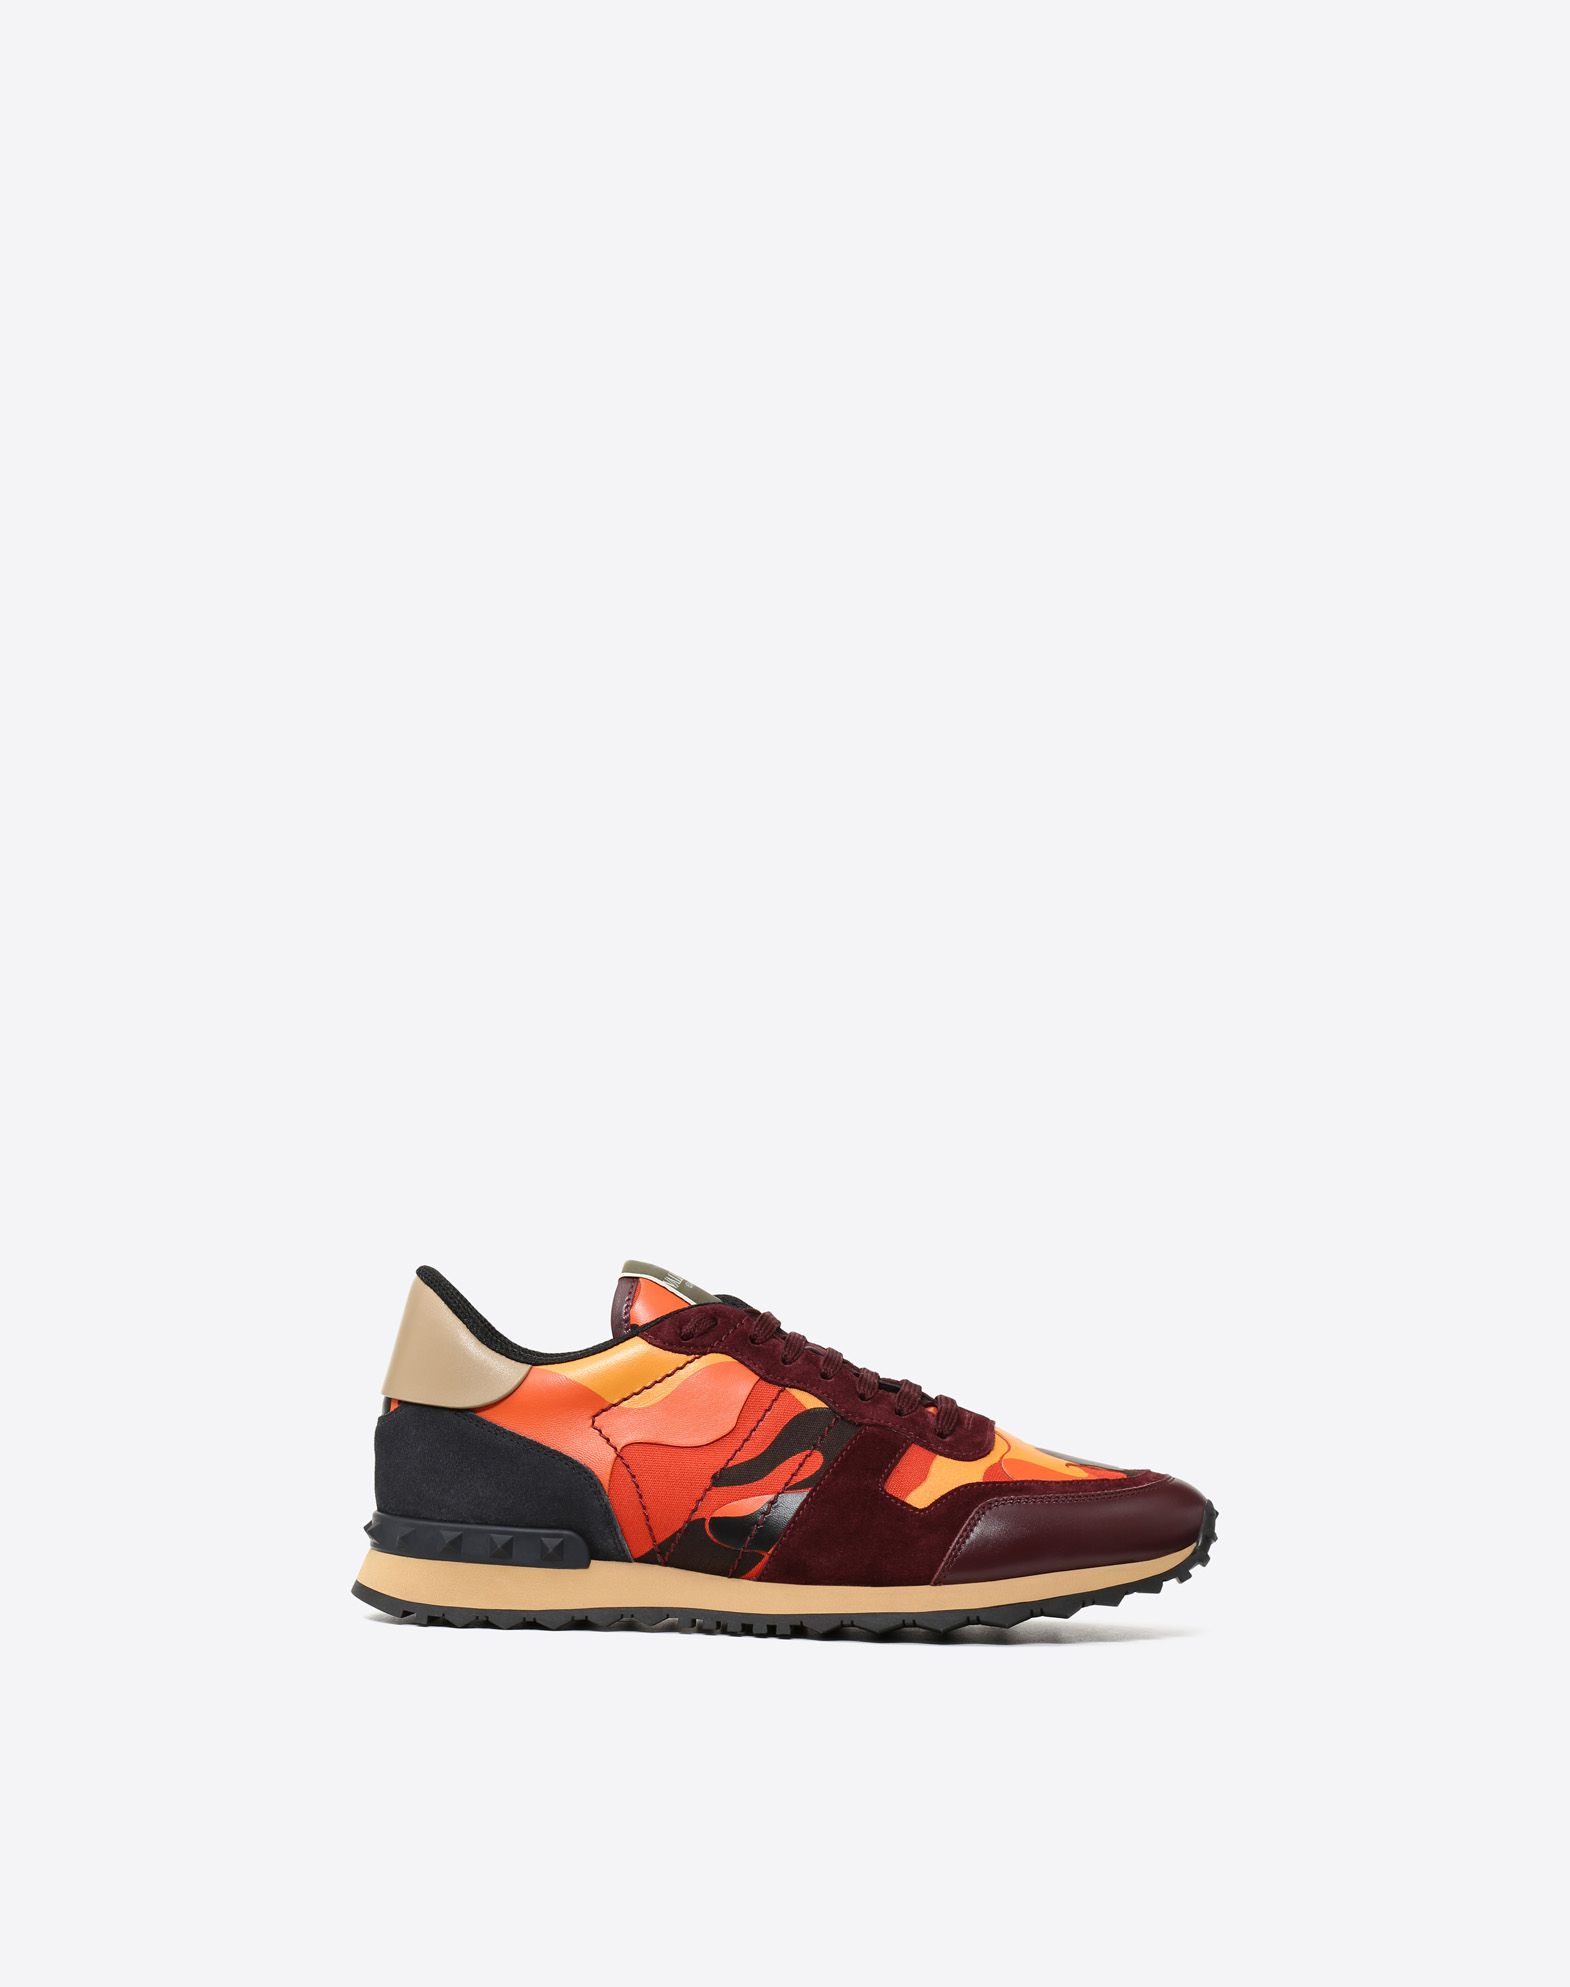 VALENTINO GARAVANI UOMO 迷彩 Rockrunner 运动鞋  LOW-TOP SNEAKERS U f